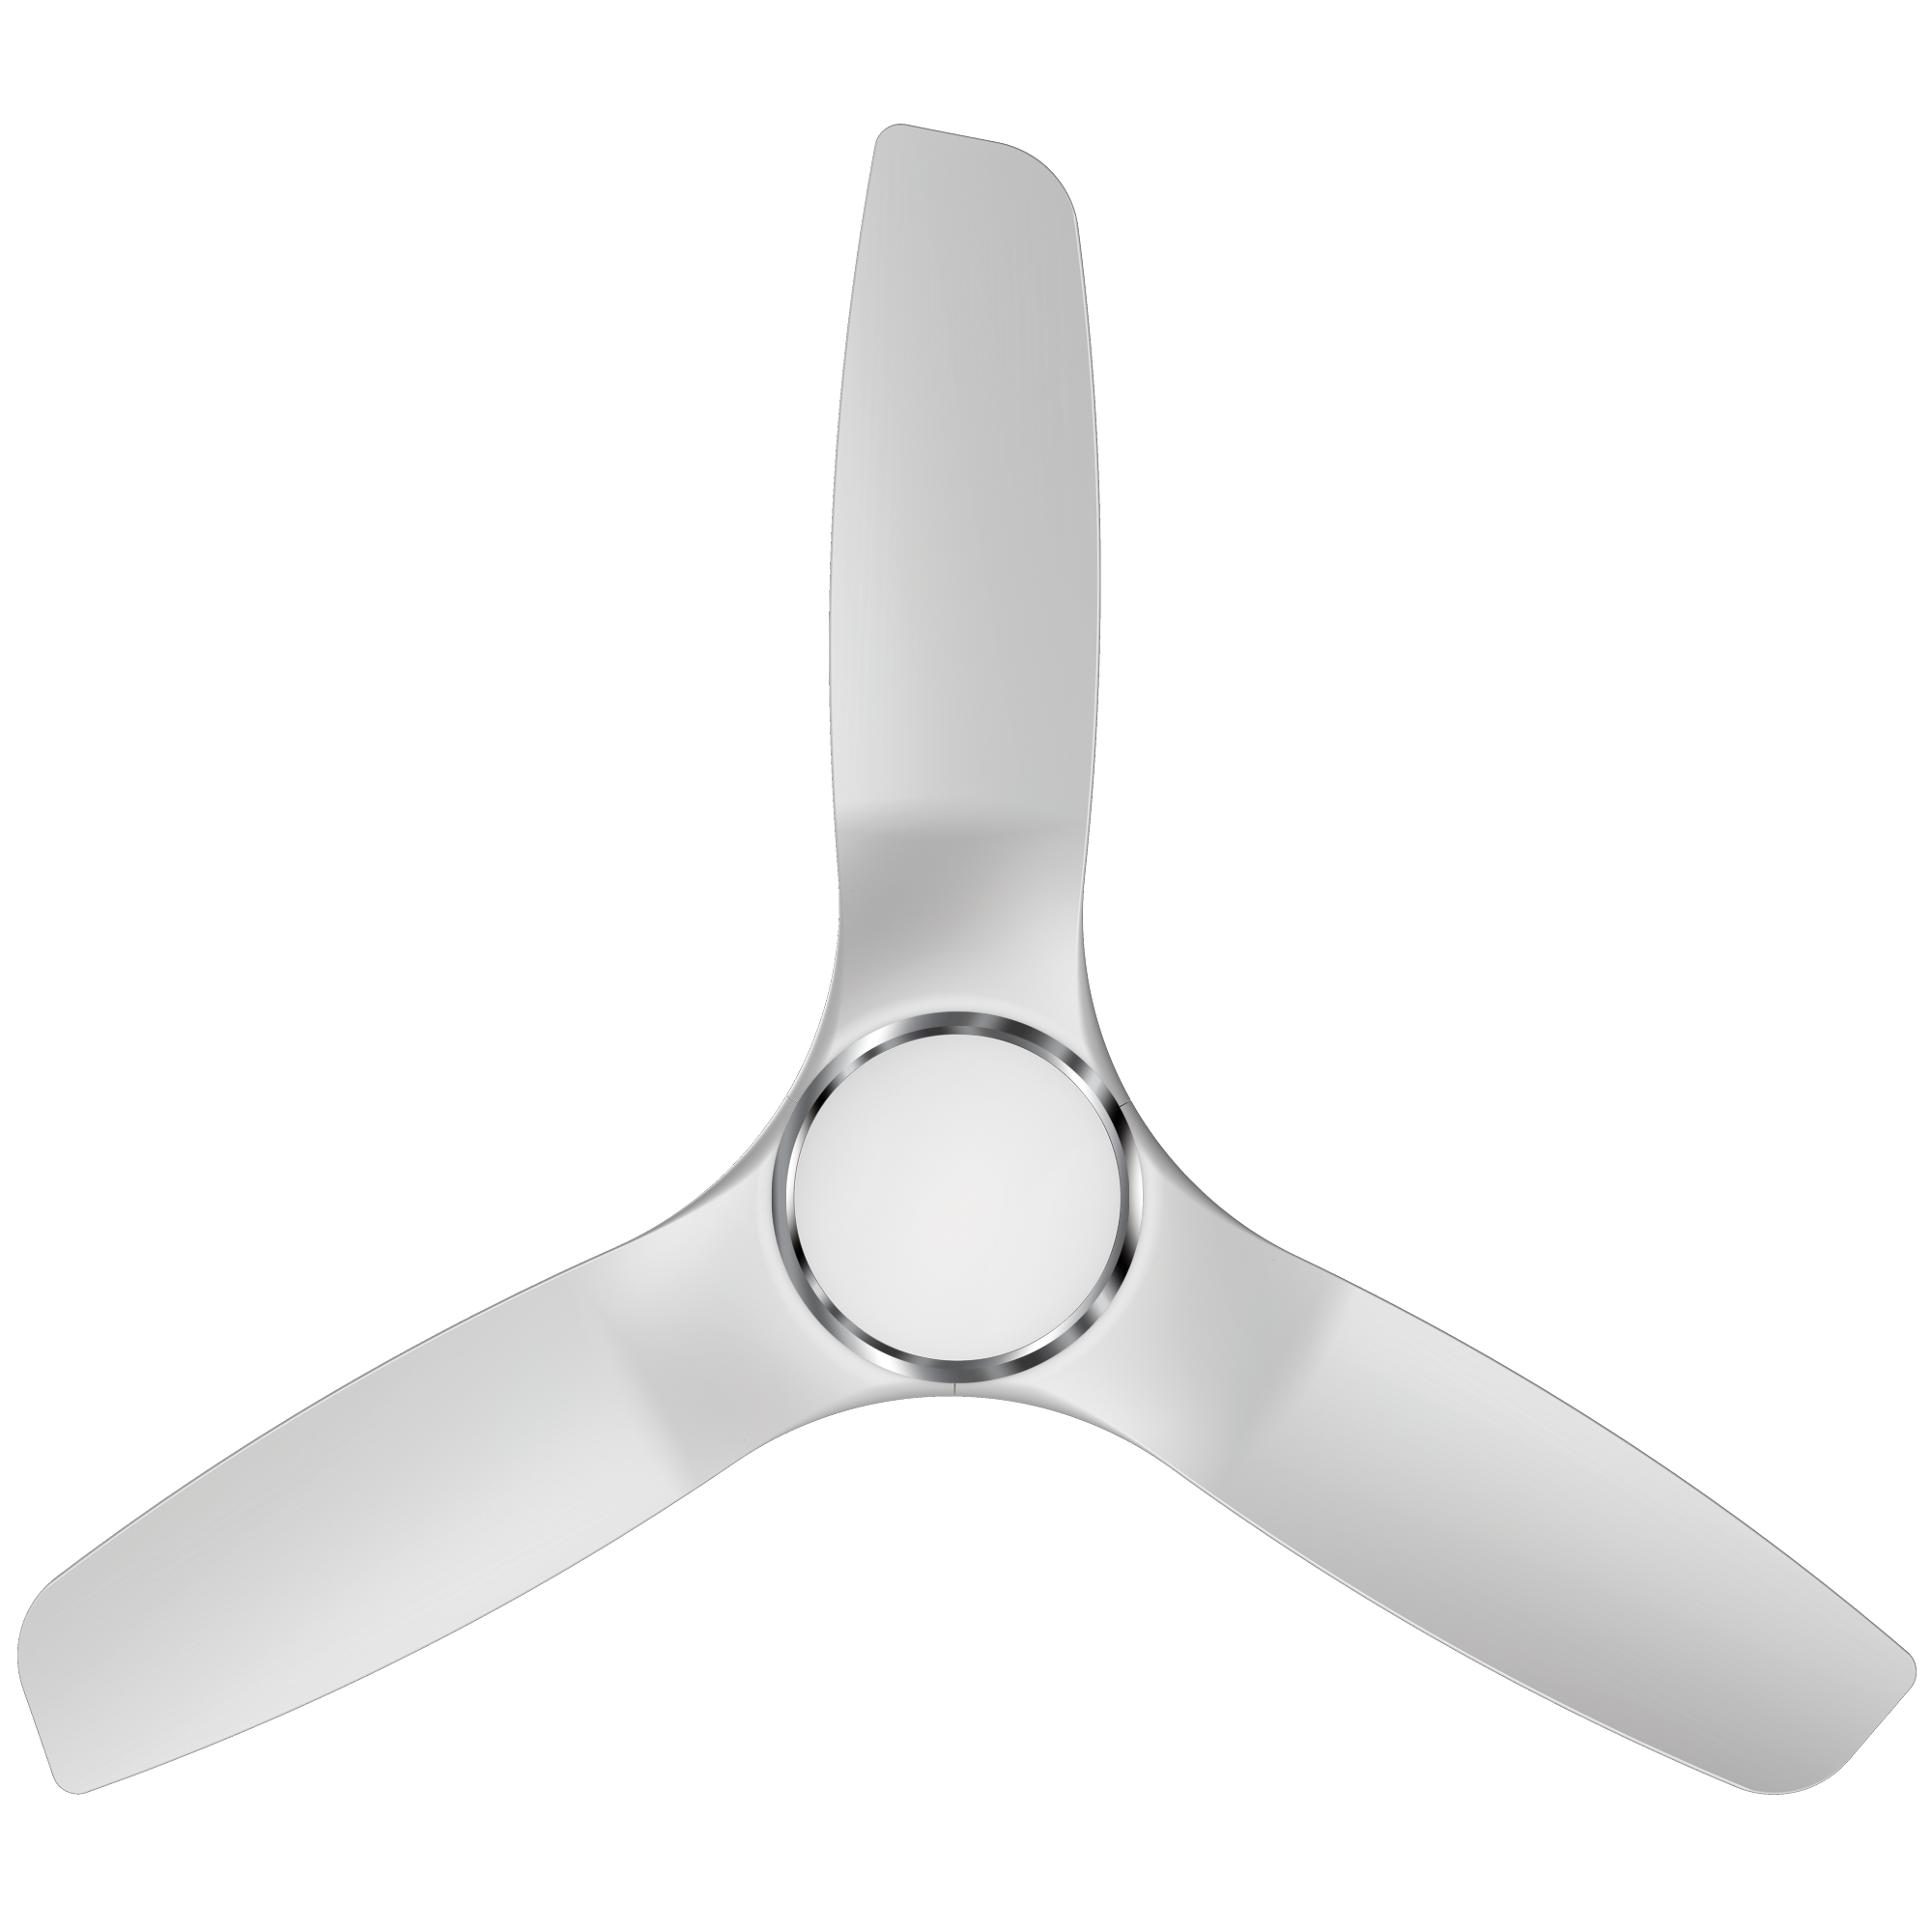 Havells Stealth Air 125cm Sweep 3 Blade Ceiling Fan (Inverter Compatibility, FHCSYSTWHT48, Elegant White)_1